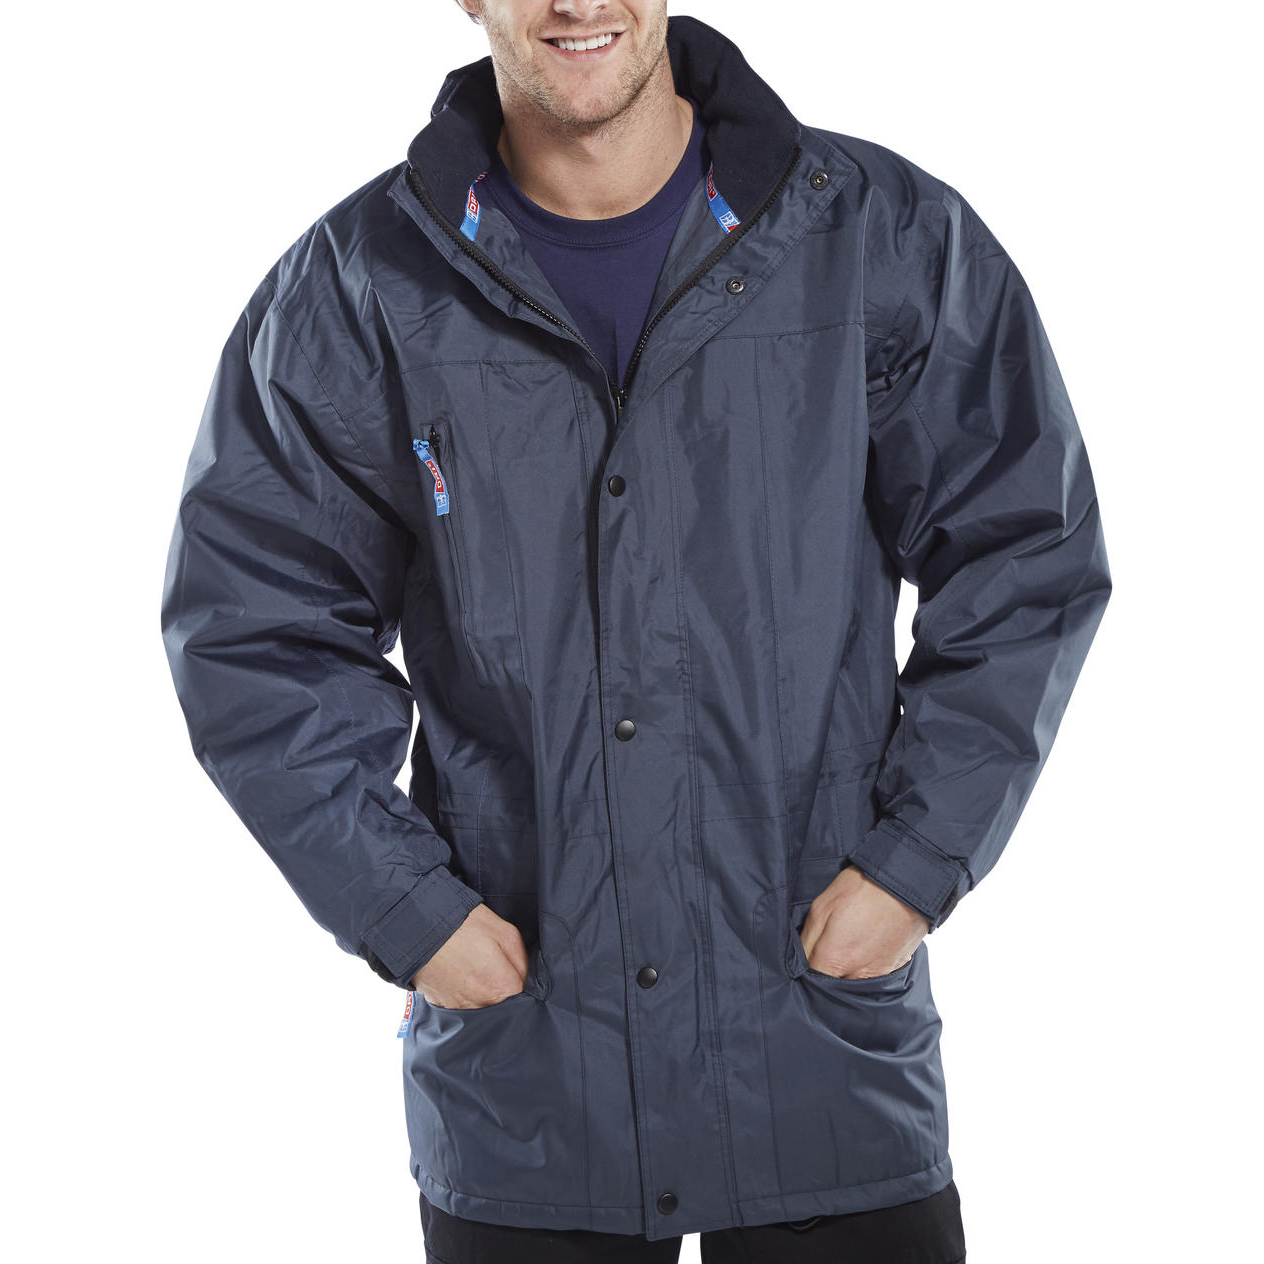 B-Dri Weatherproof Guardian Jacket with Concealed Hood Small Navy Blue Ref GU88PNS *Up to 3 Day Leadtime*